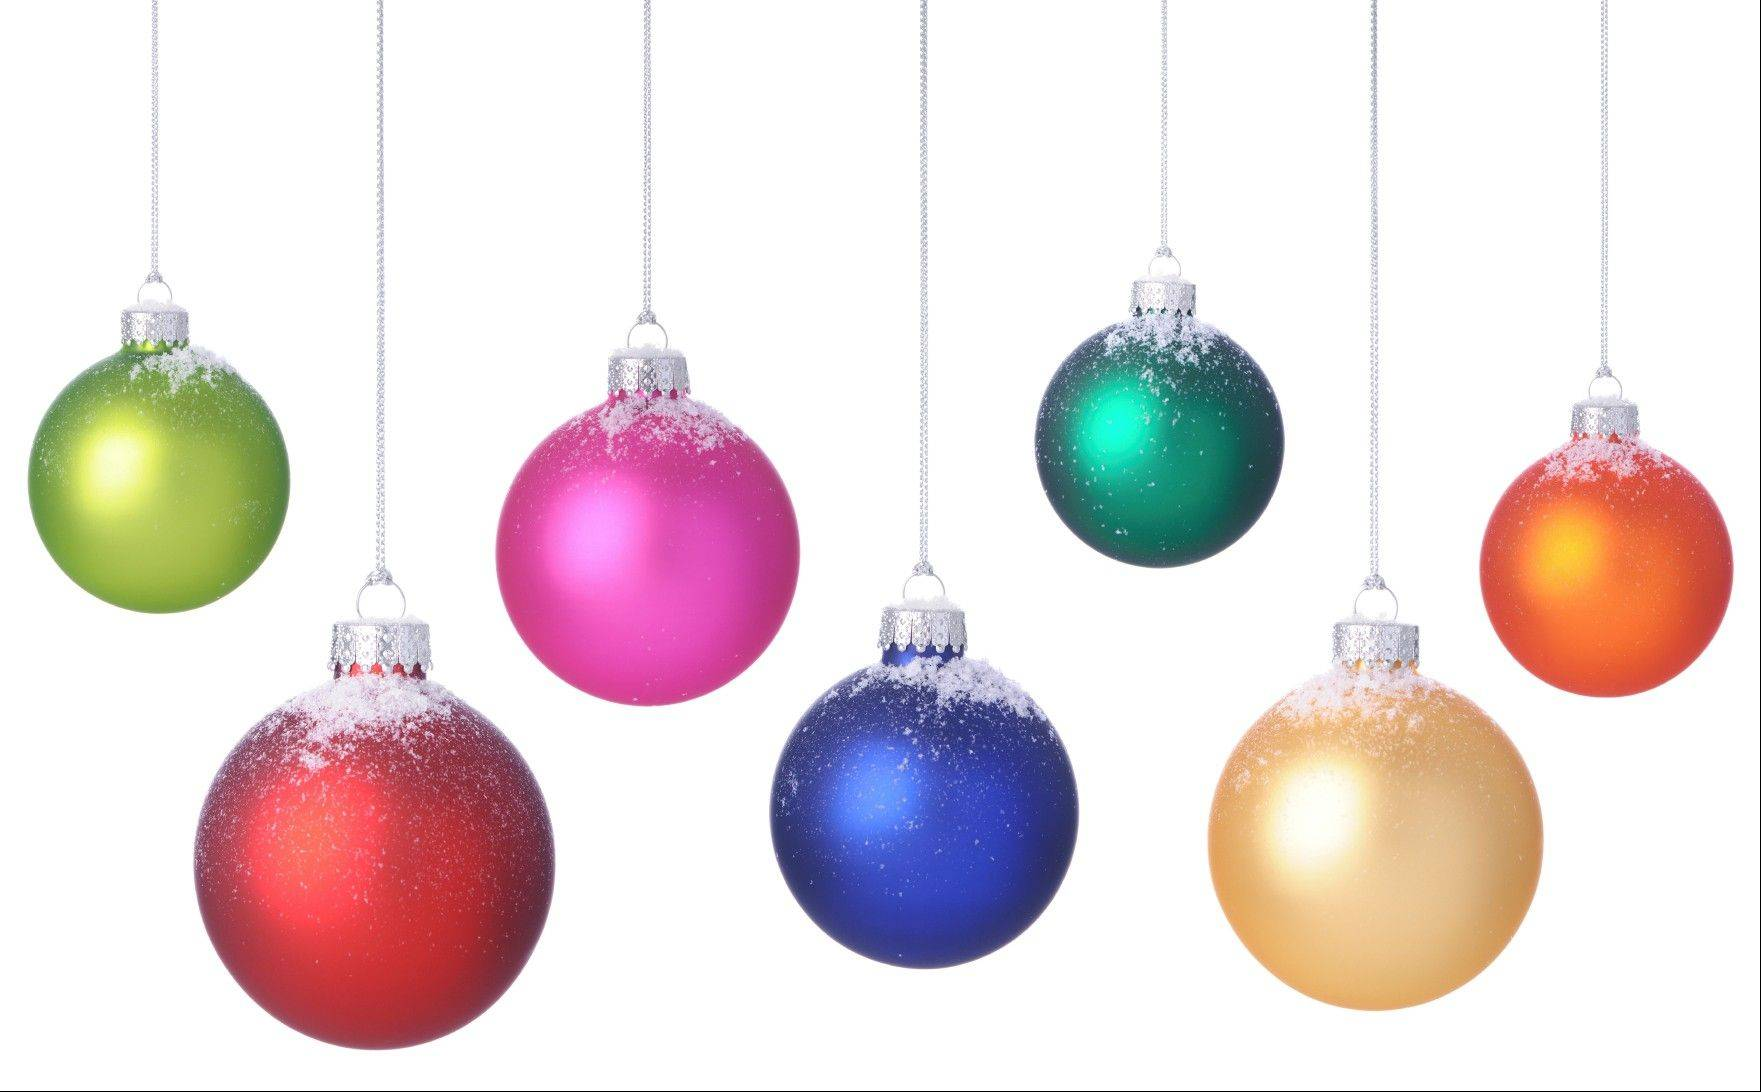 Colorful ornaments can brighten any space.